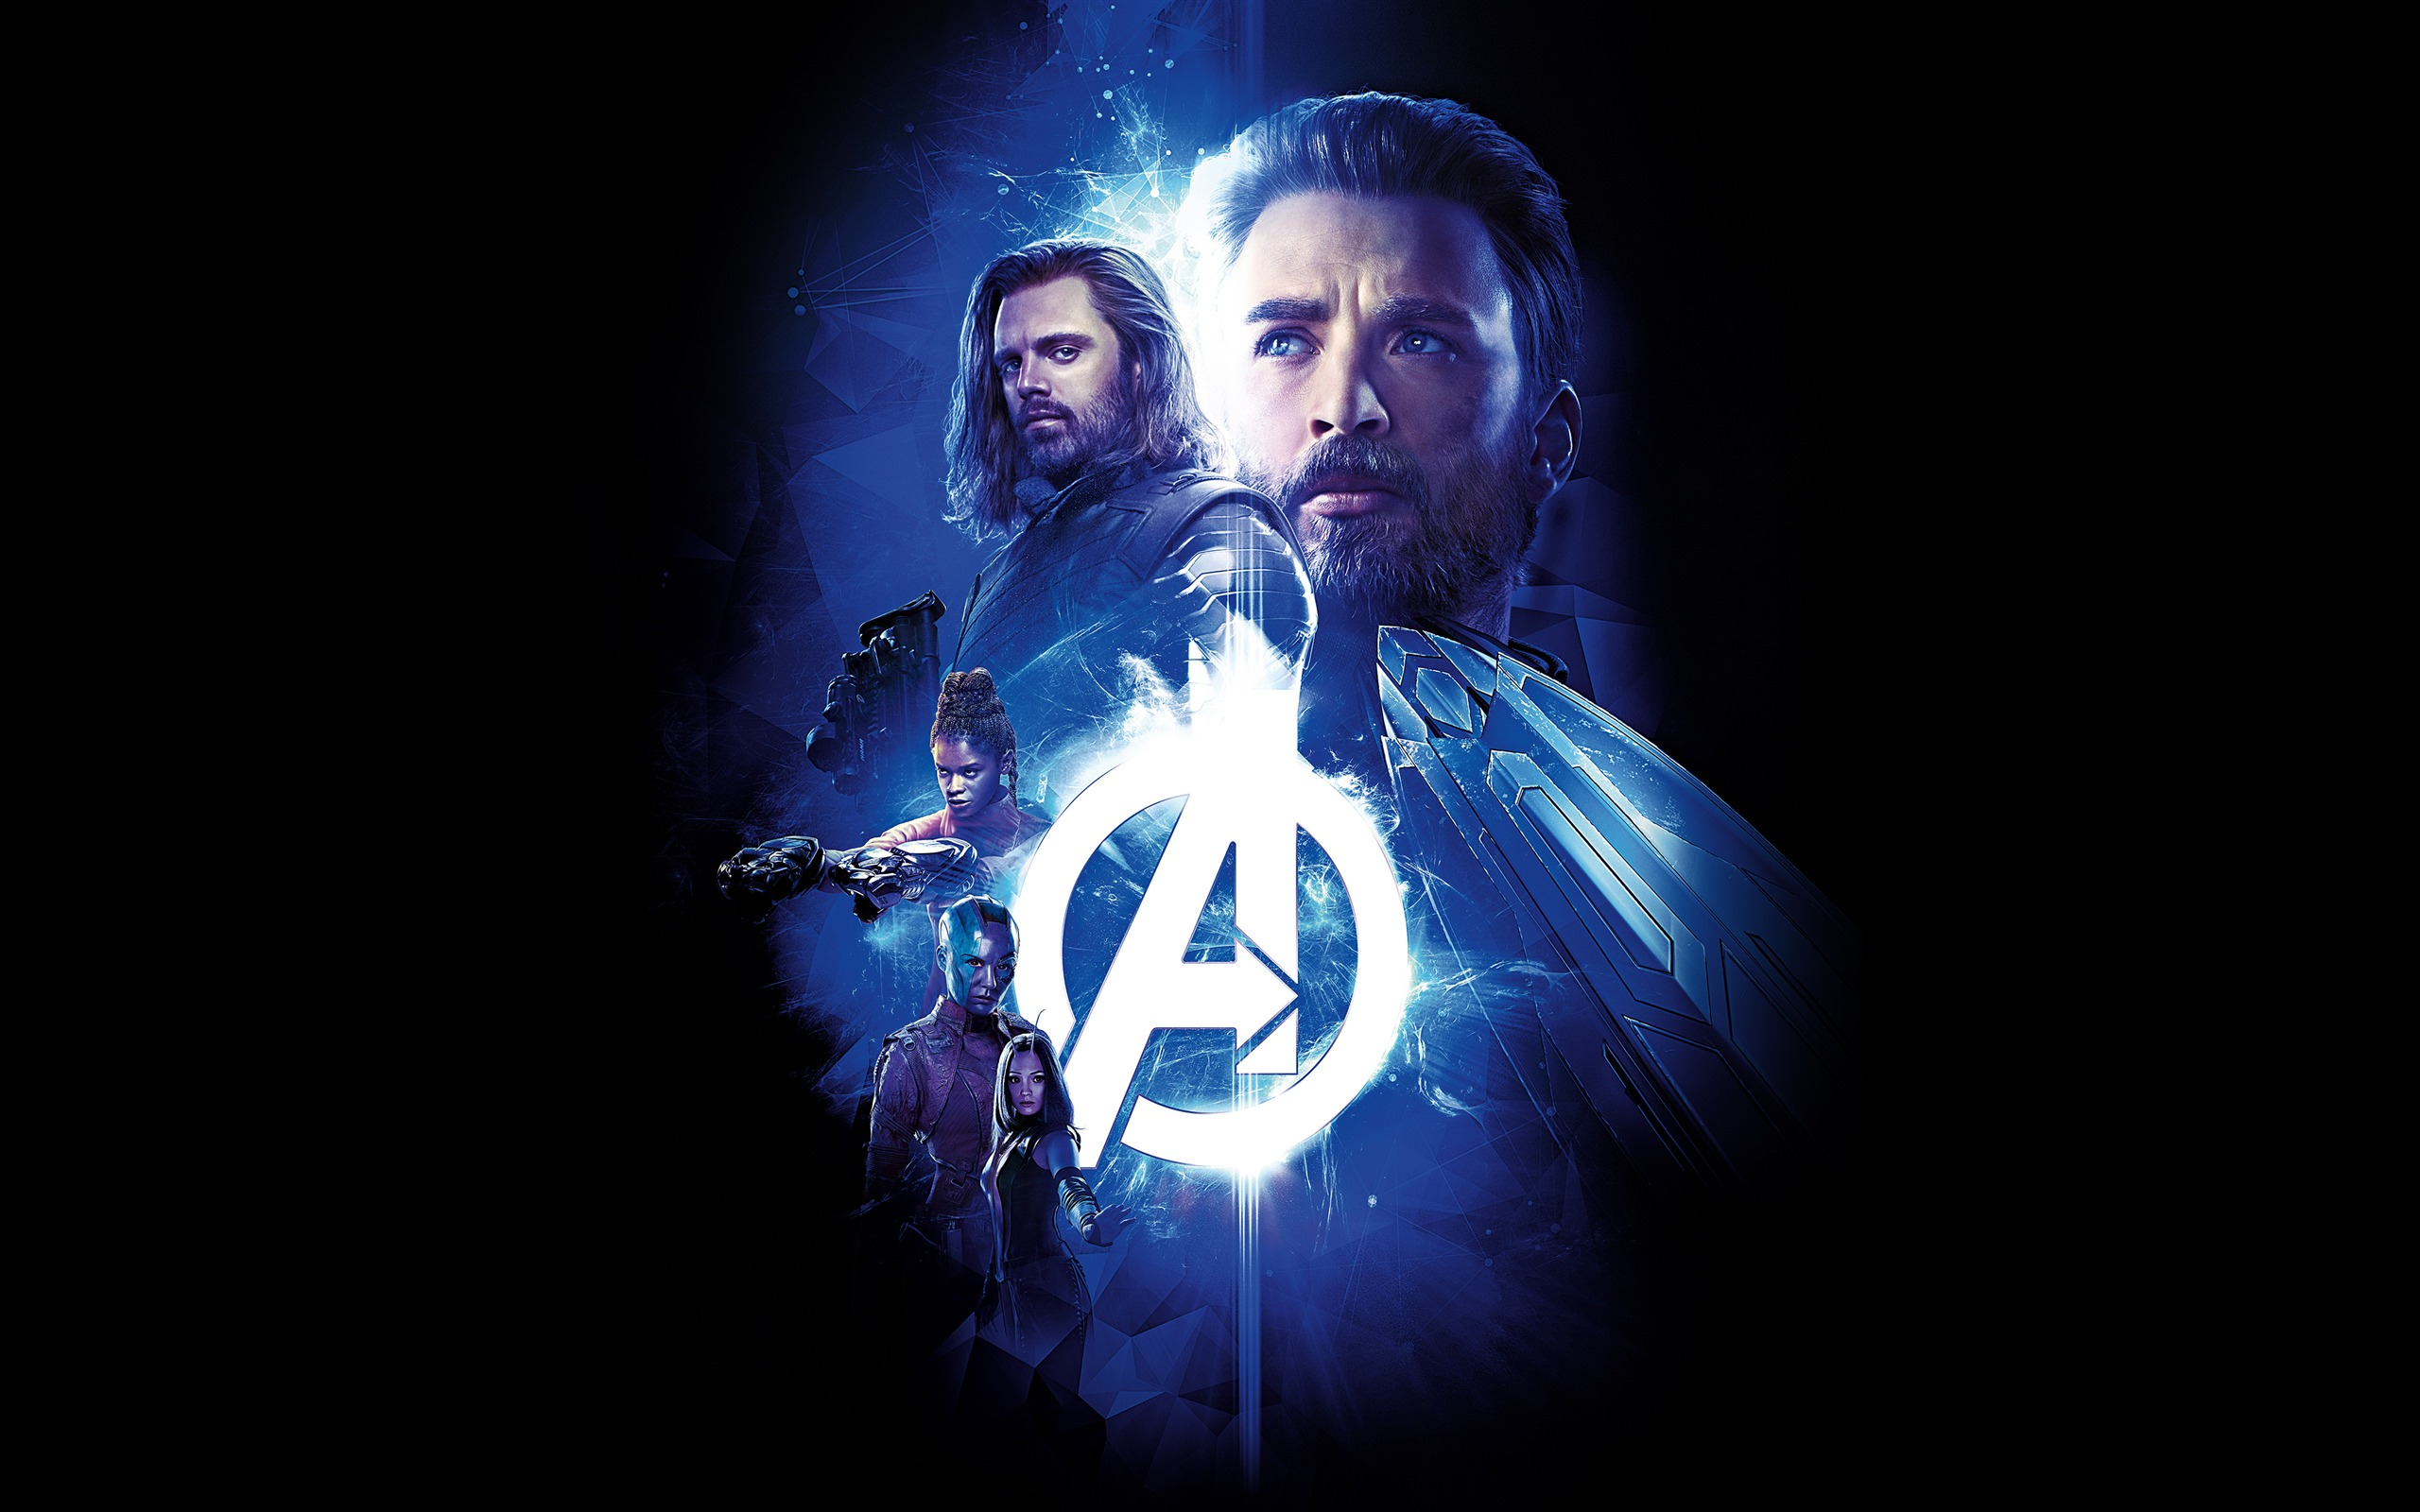 Avengers Infinity War 2018 Blue Theme Poster Preview 10wallpaper Com